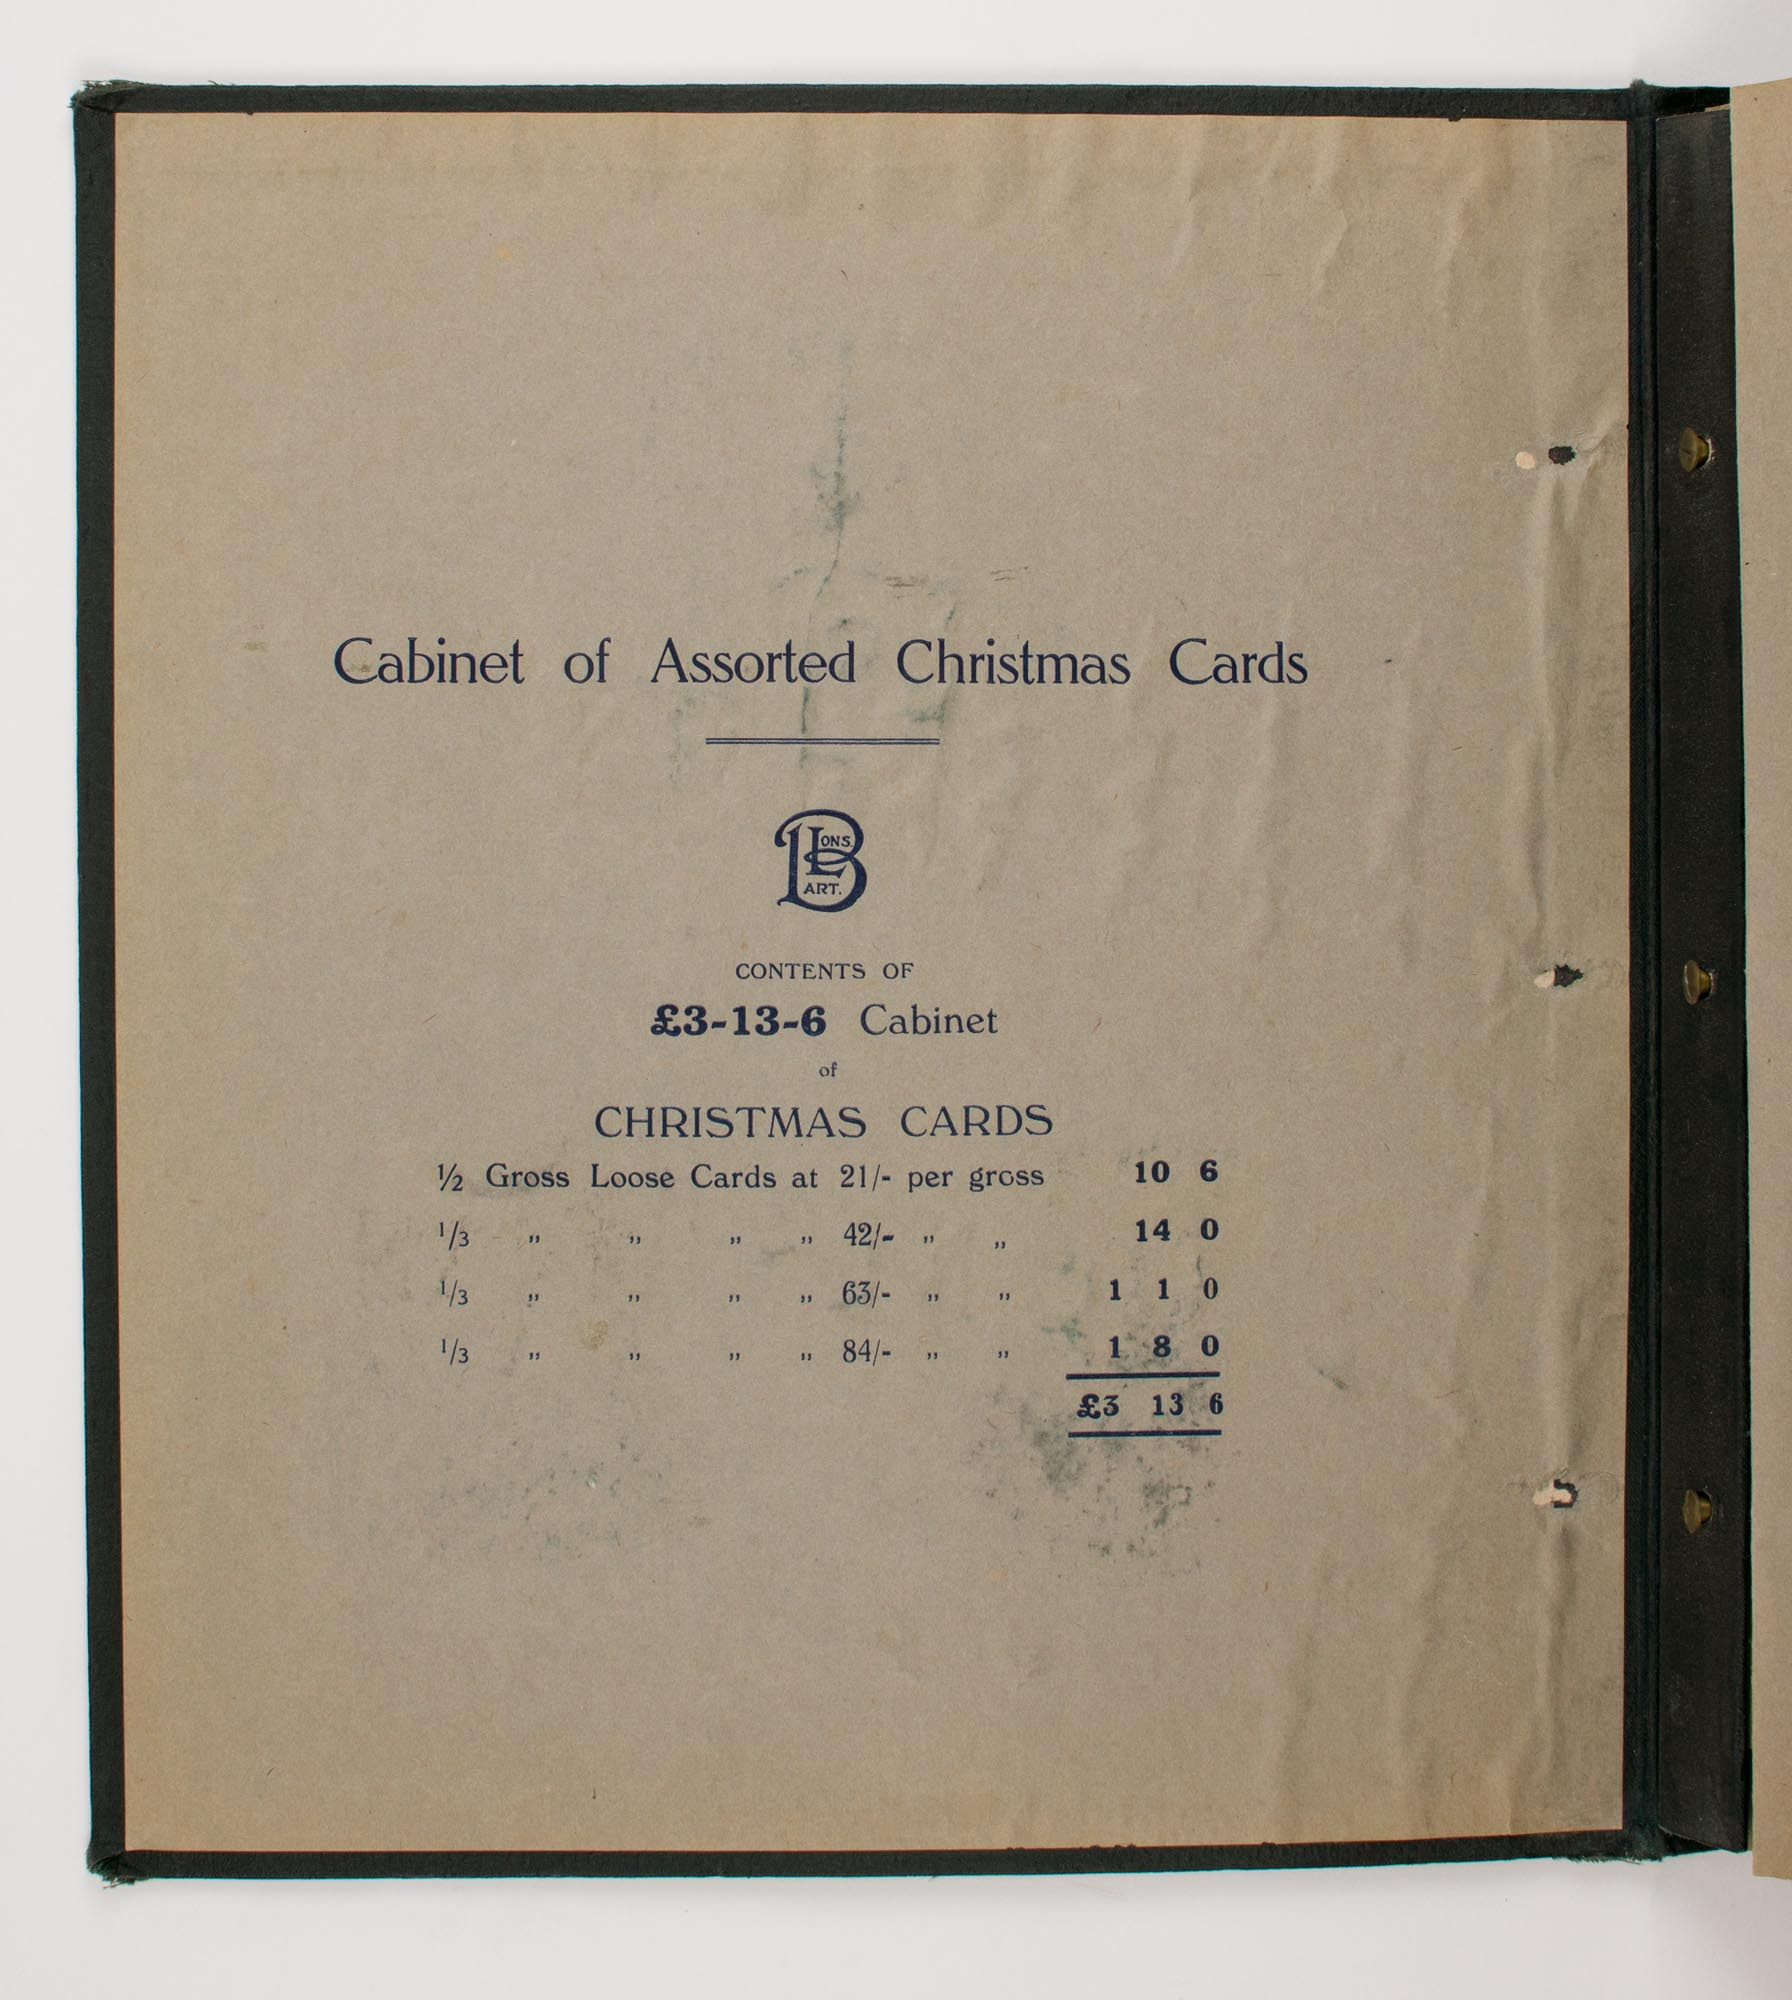 Art Christmas Cards cover title . Cabinet of Assorted Christmas ...